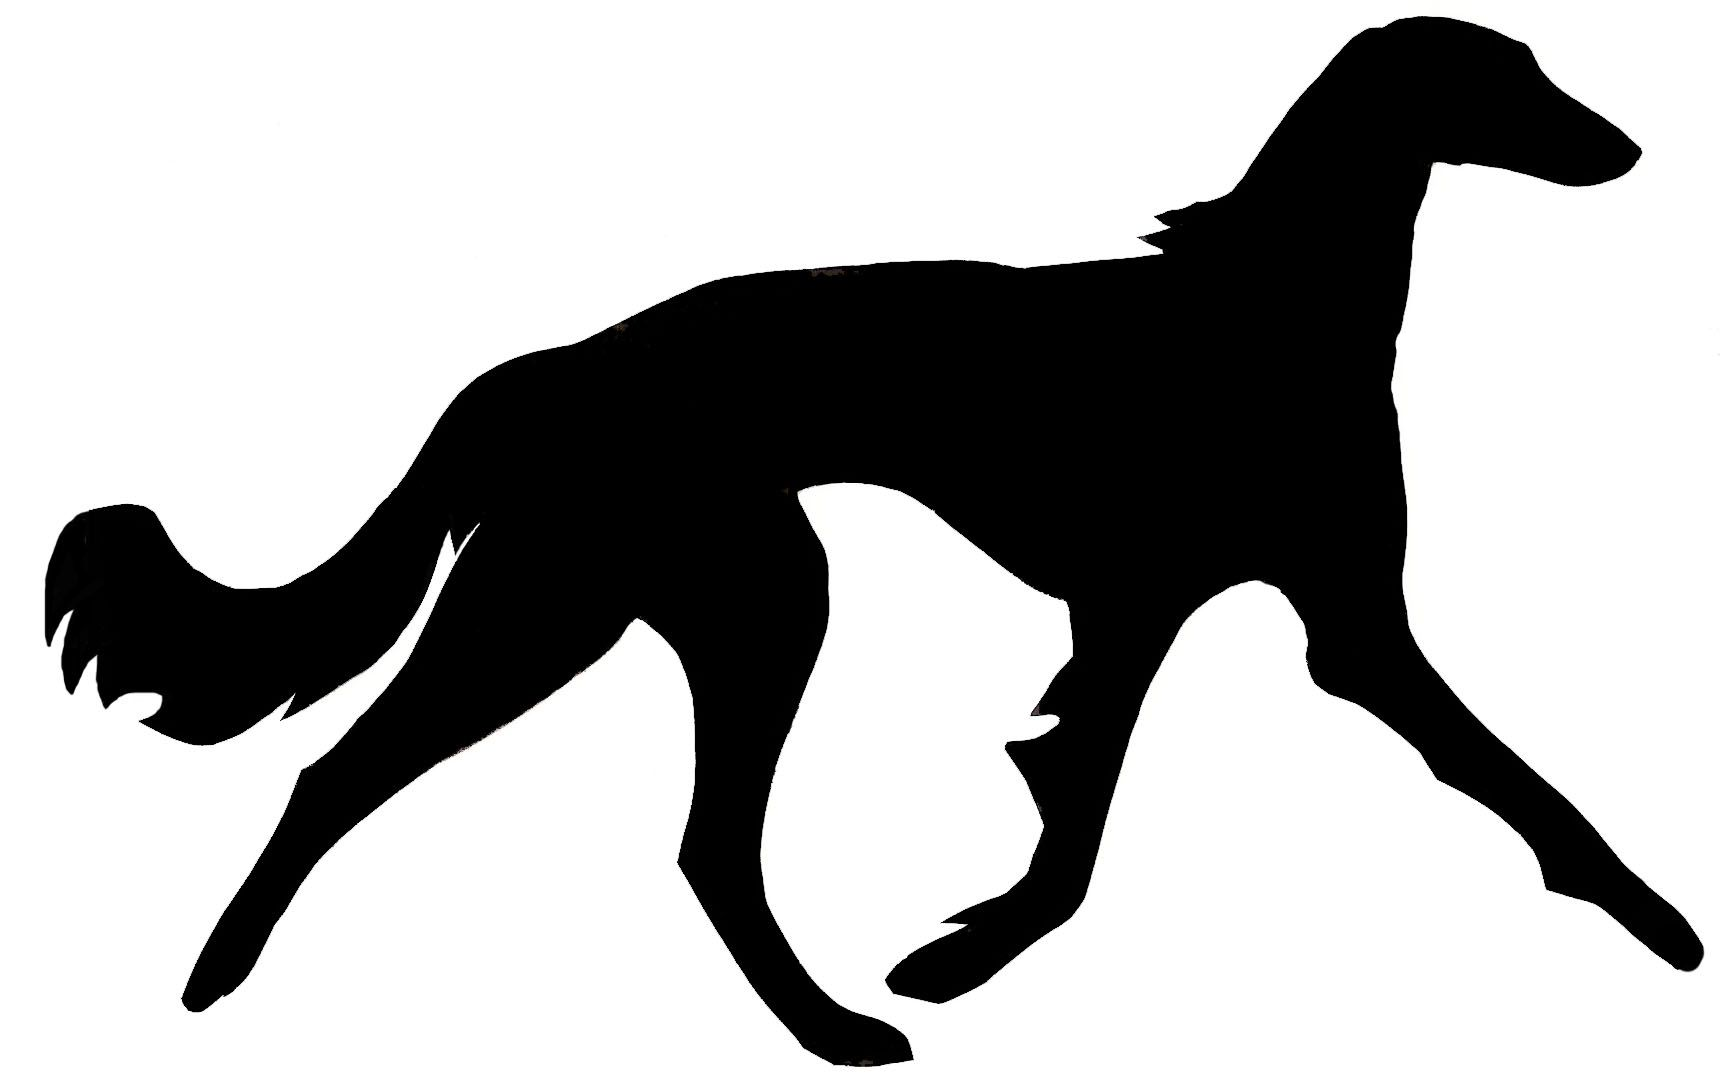 Saluki clipart image royalty free library Saluki Silhouette stevesuniques.com   Greyhounds, Salukis ... image royalty free library